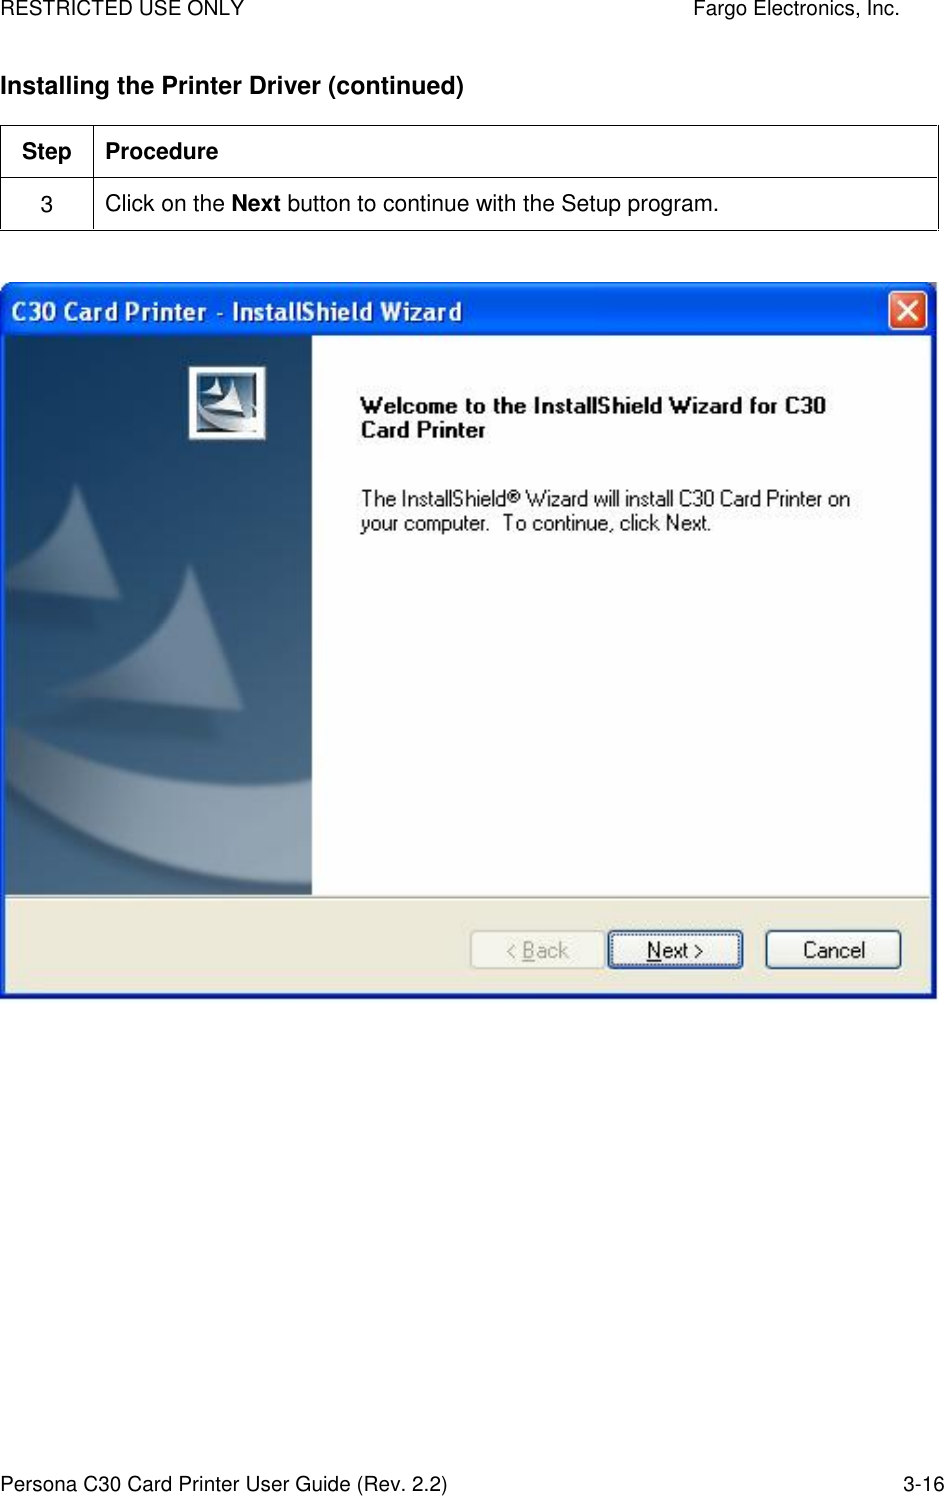 FARGO ELECTRONICS INC C30E DRIVERS FOR WINDOWS DOWNLOAD